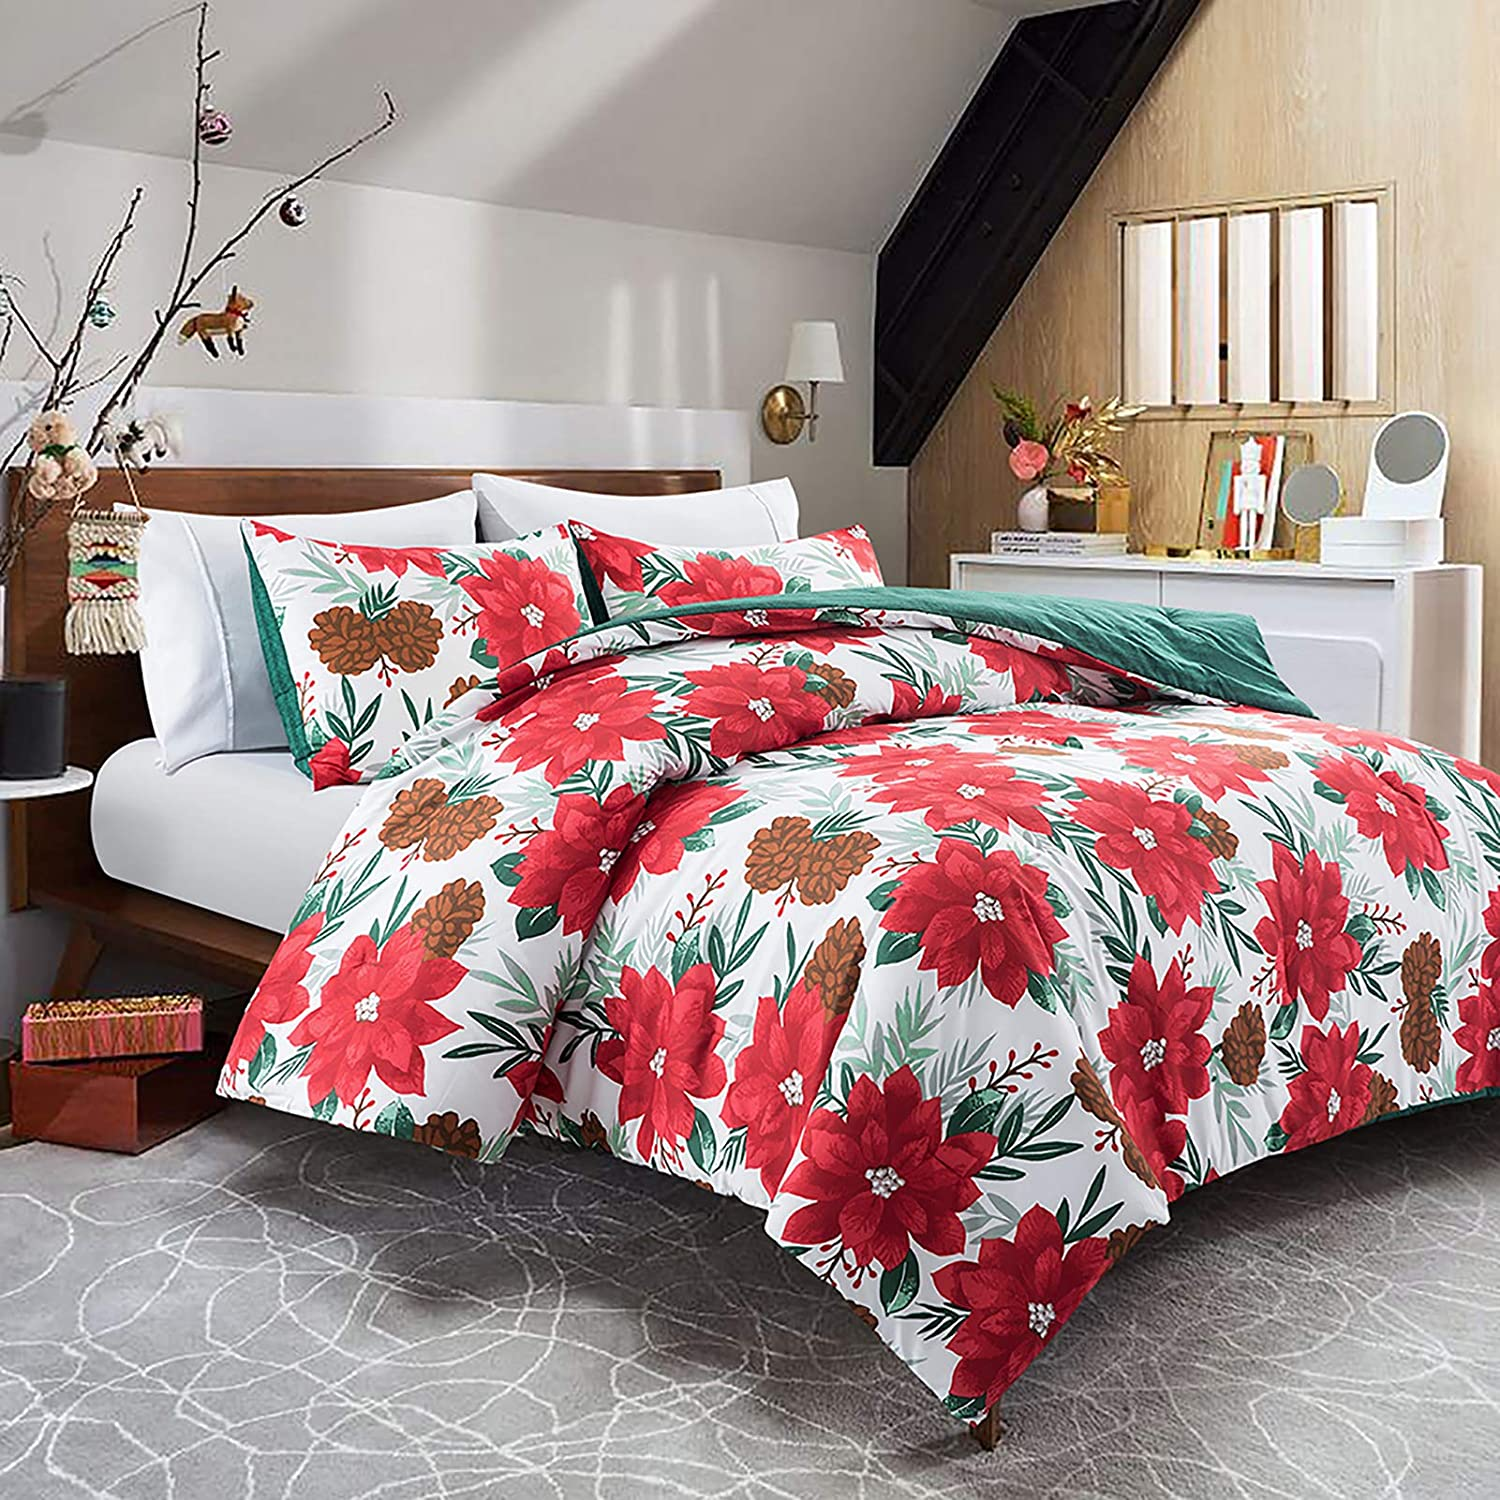 Lifeety 3 Piece Comforter Set with 2 Shams, Christmas Bedding Set, King Size, Red Flower and Pine Cone Pattern